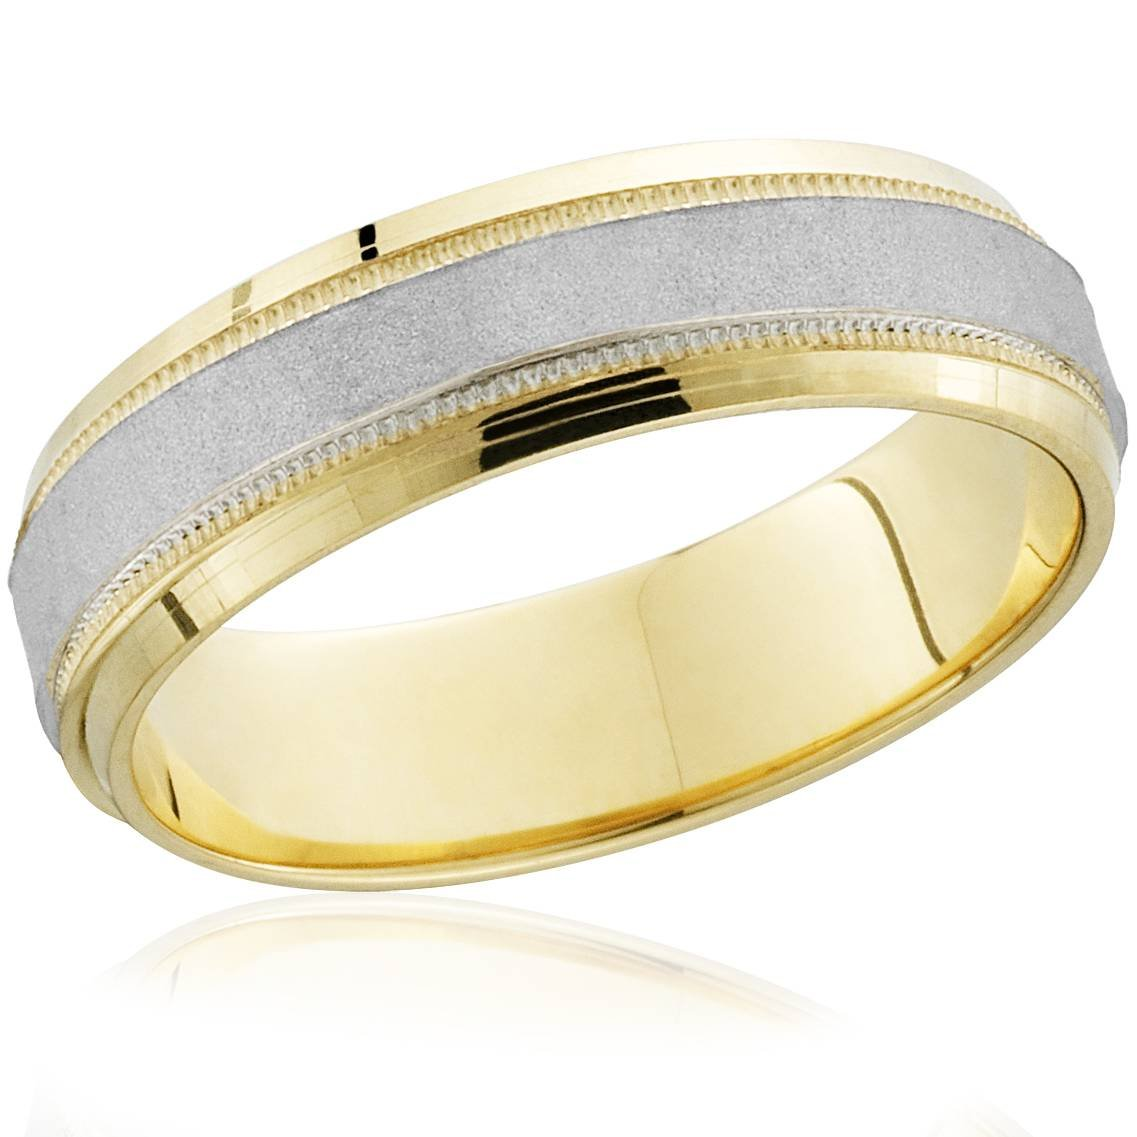 18k Gold & Platinum Brushed Two Tone Wedding Band Ring - Size 9.5 by P3 POMPEII3